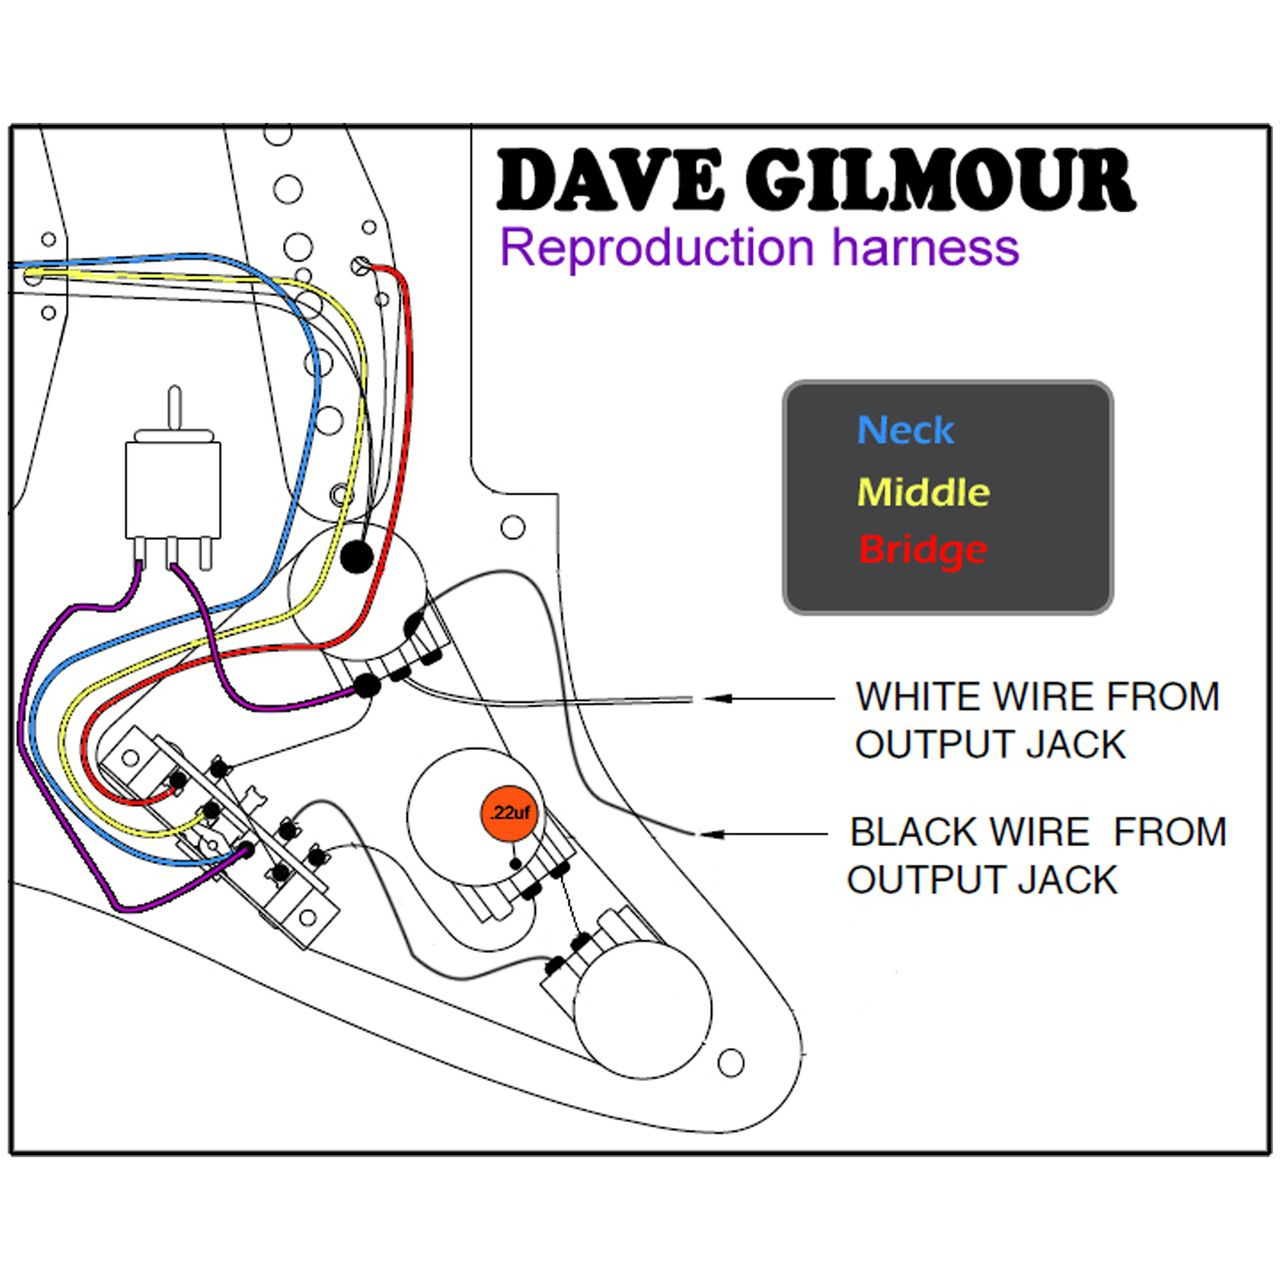 Strat 7 Way Wiring Diagram Schema Diagrams Fender Deluxe Players Gilmour On For 5 Switch Dave